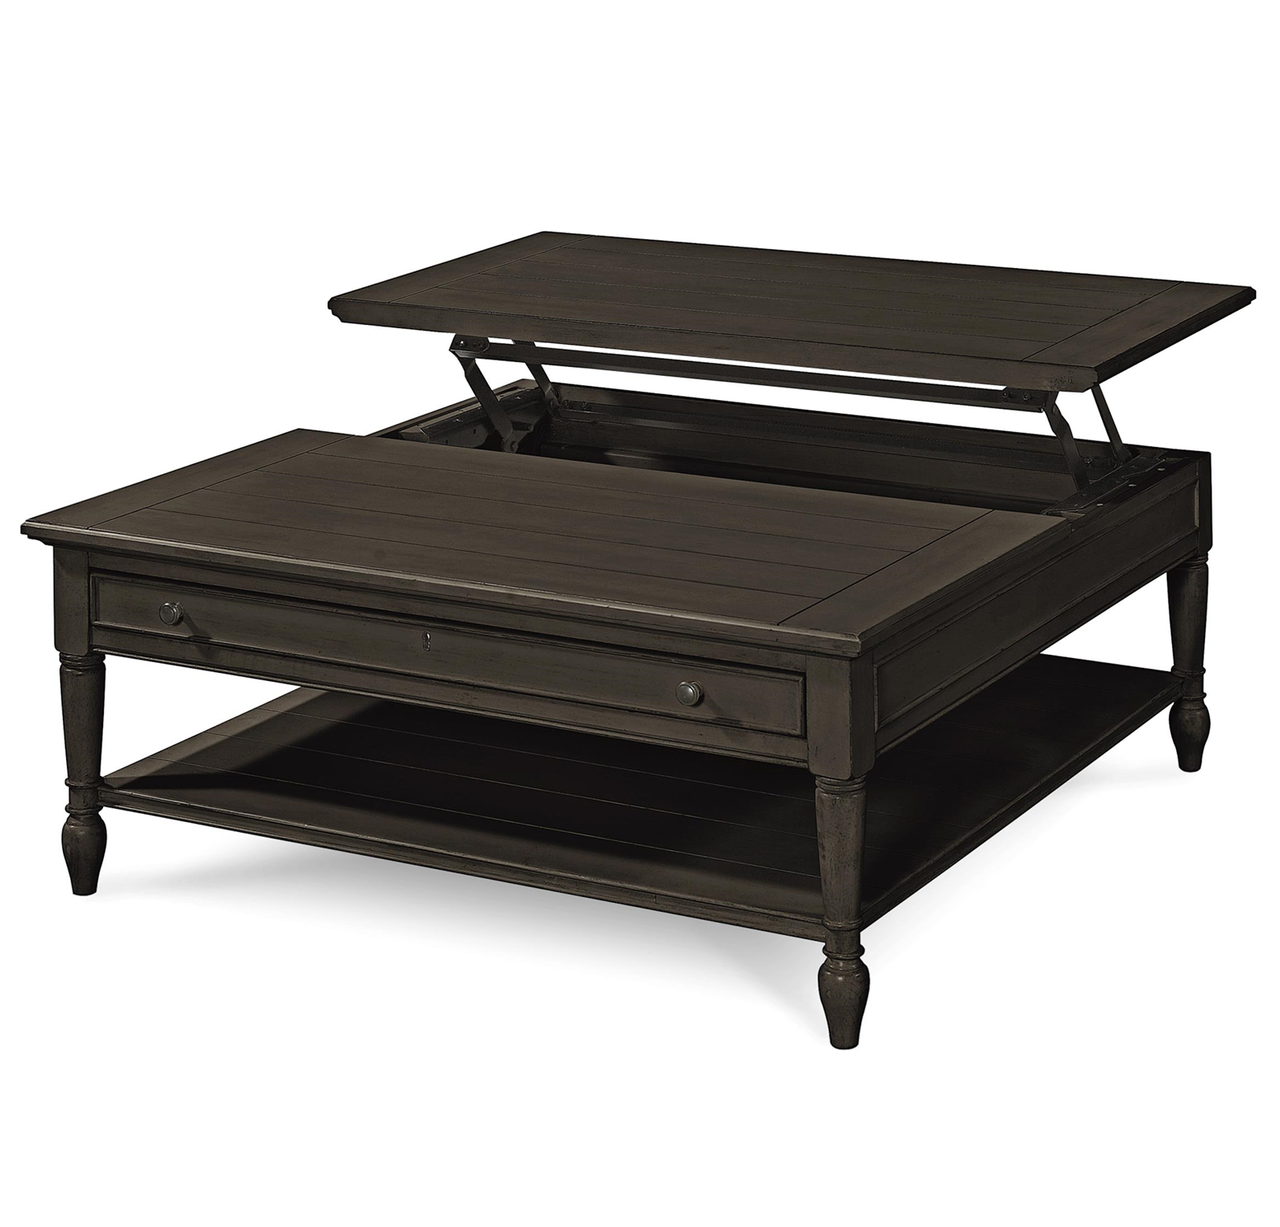 Country Chic Black Wood Square Coffee Table With Lift Top Lift